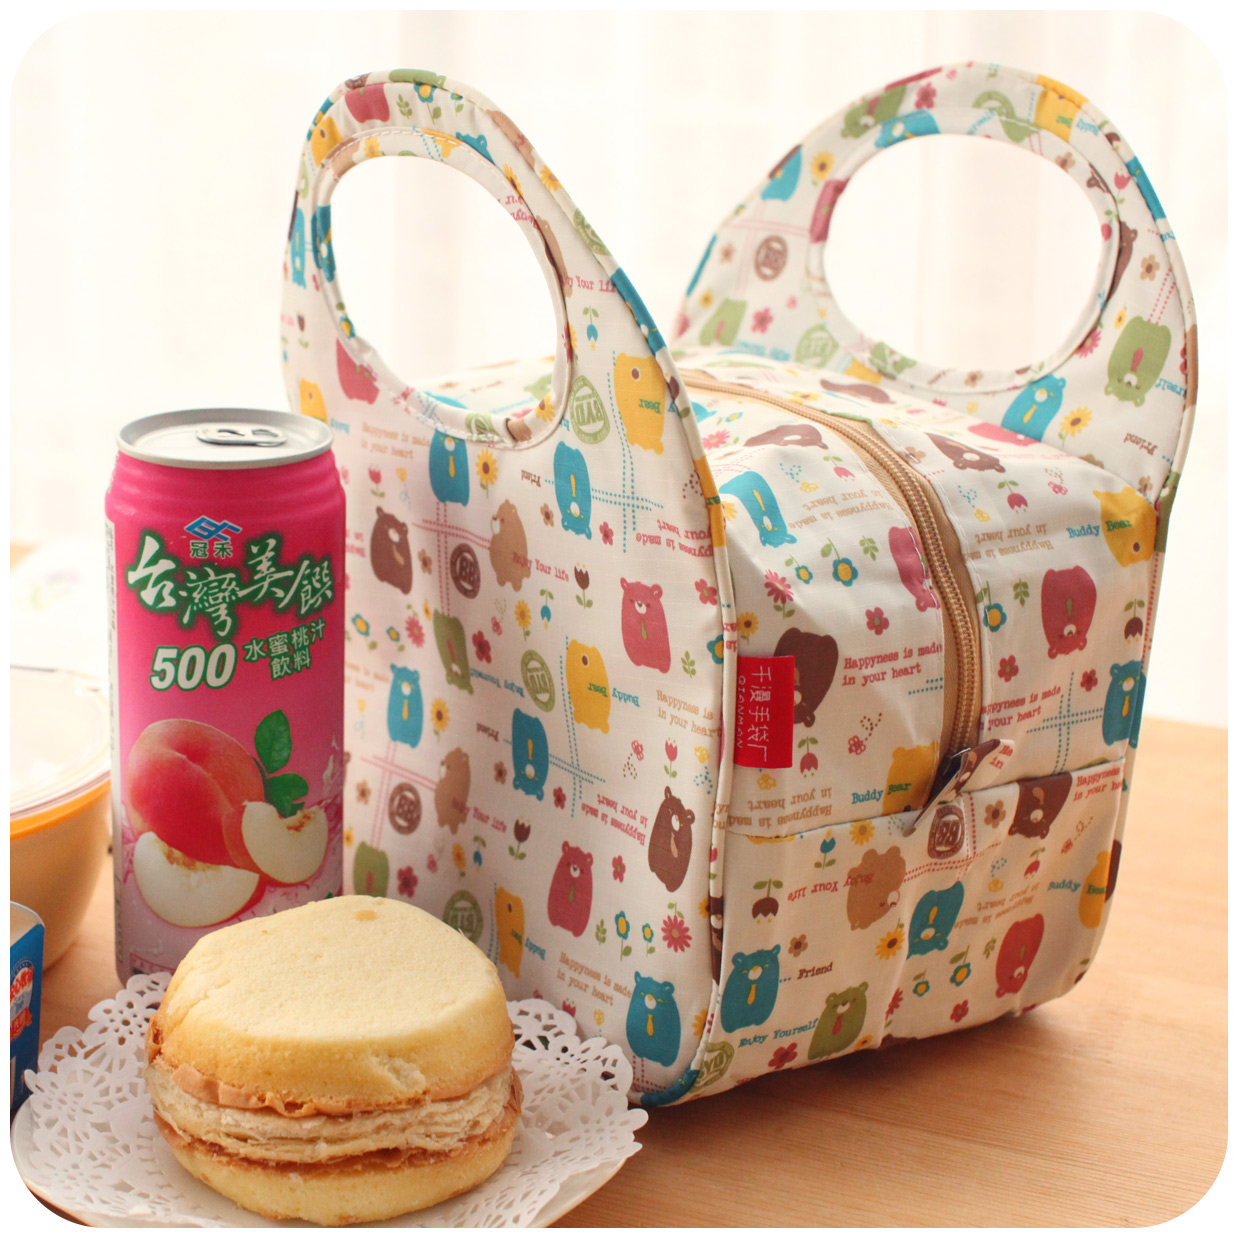 Compare Prices on Cute Lunch Bags- Online Shopping/Buy Low Price ...